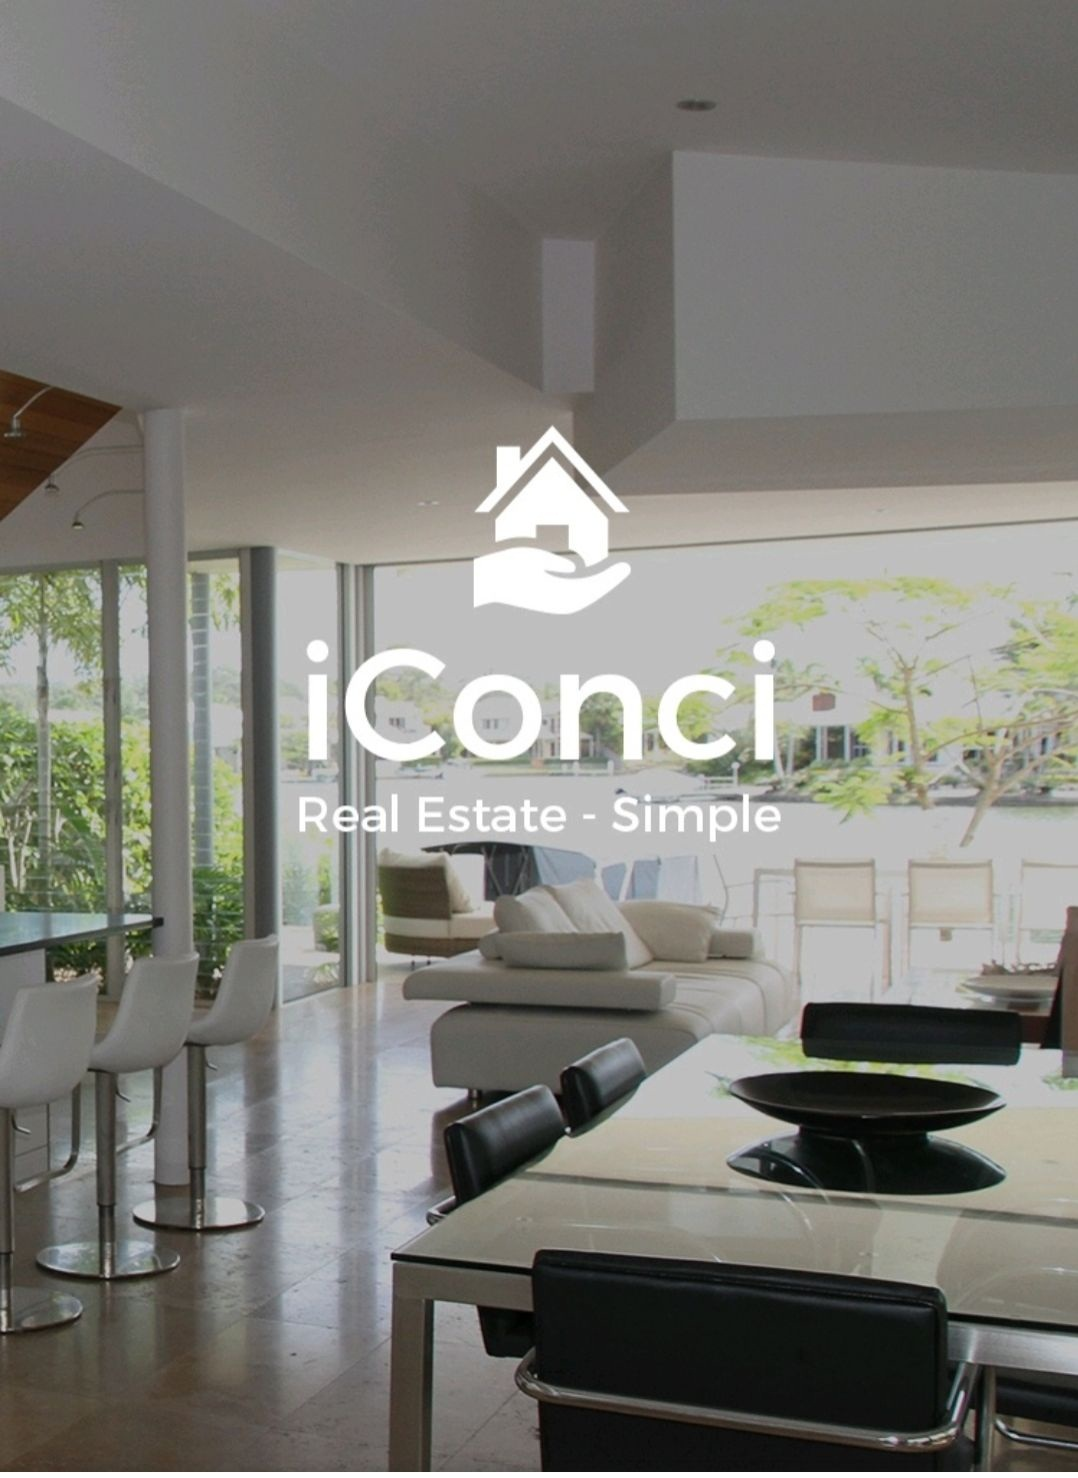 About - Find out about us and our mission to bring the best Customer Experience to Real Estate.